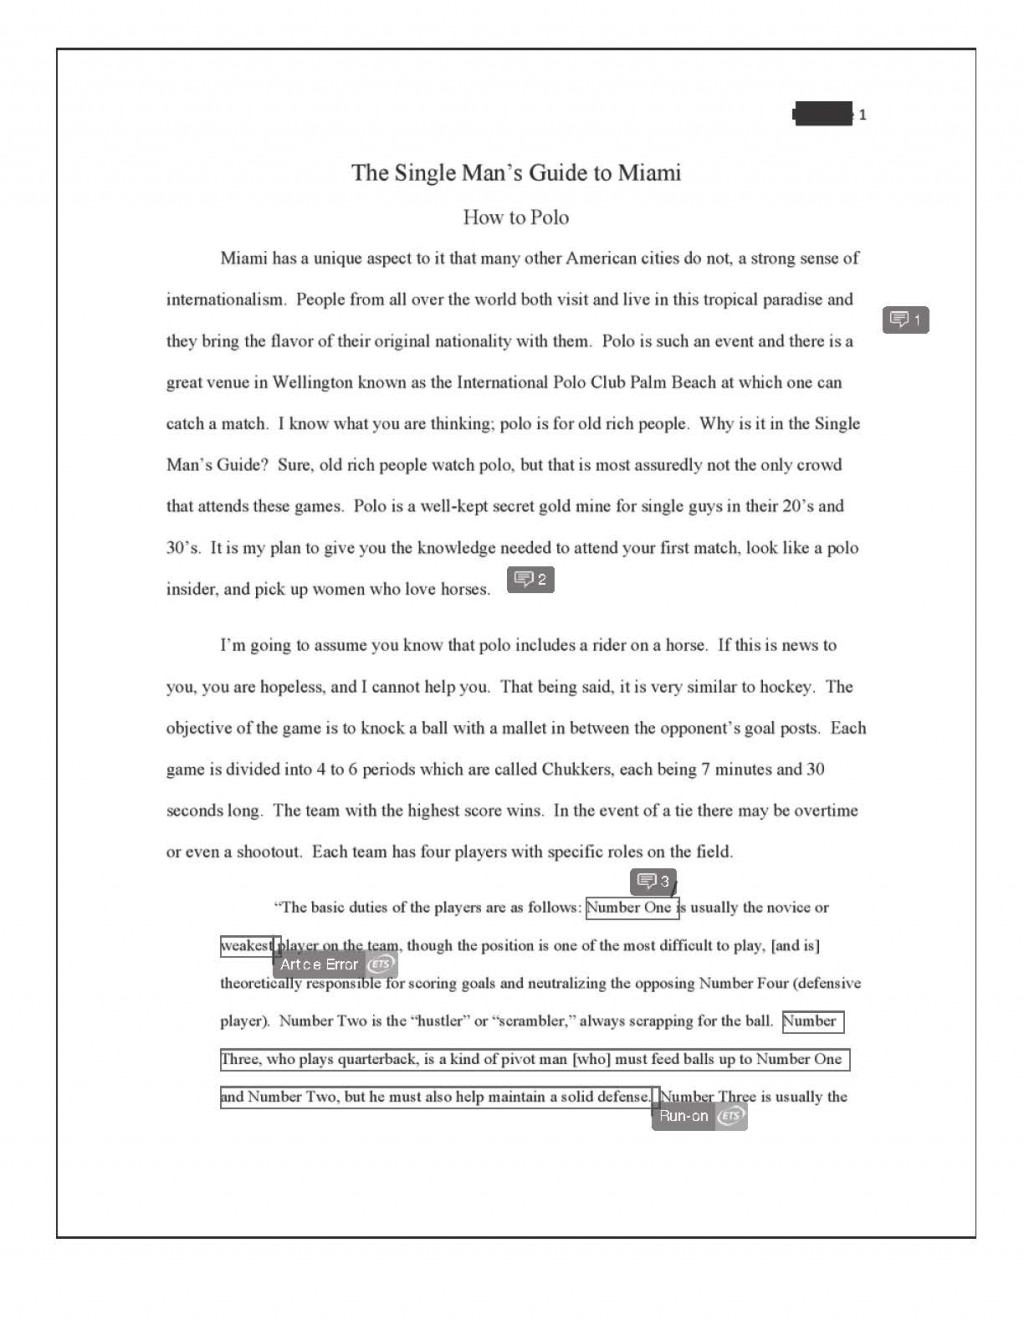 024 Interview Essays Free Informative Essay Final How To Polo Redacted Page 2 Formidable Examples Sample Large